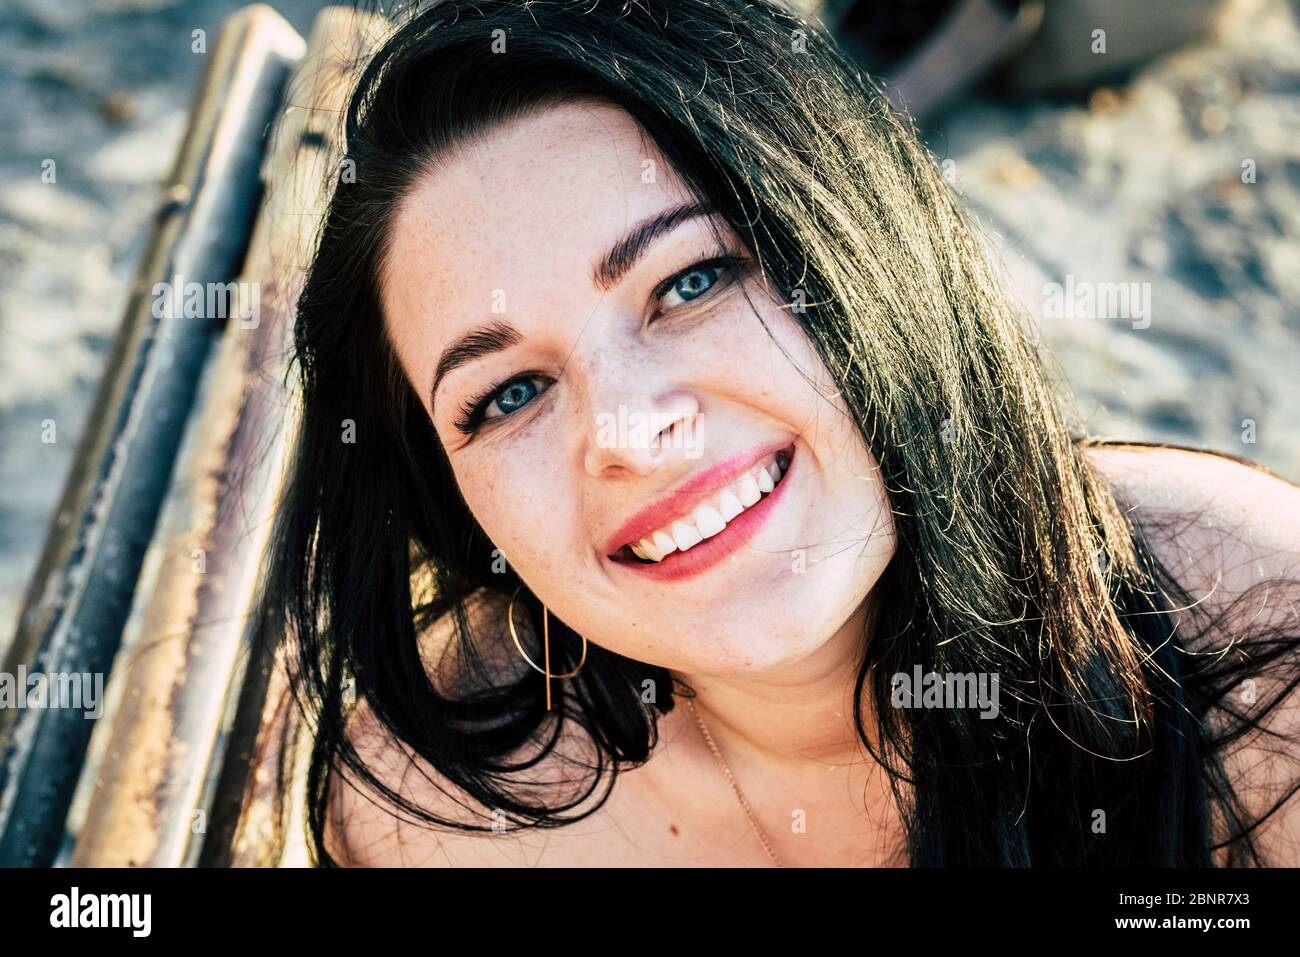 Beautiful caucasian young woman portrait smile at the camera - cheerful happy people with blue eyes and long black hair in outdoor leisure activity alone Stock Photo